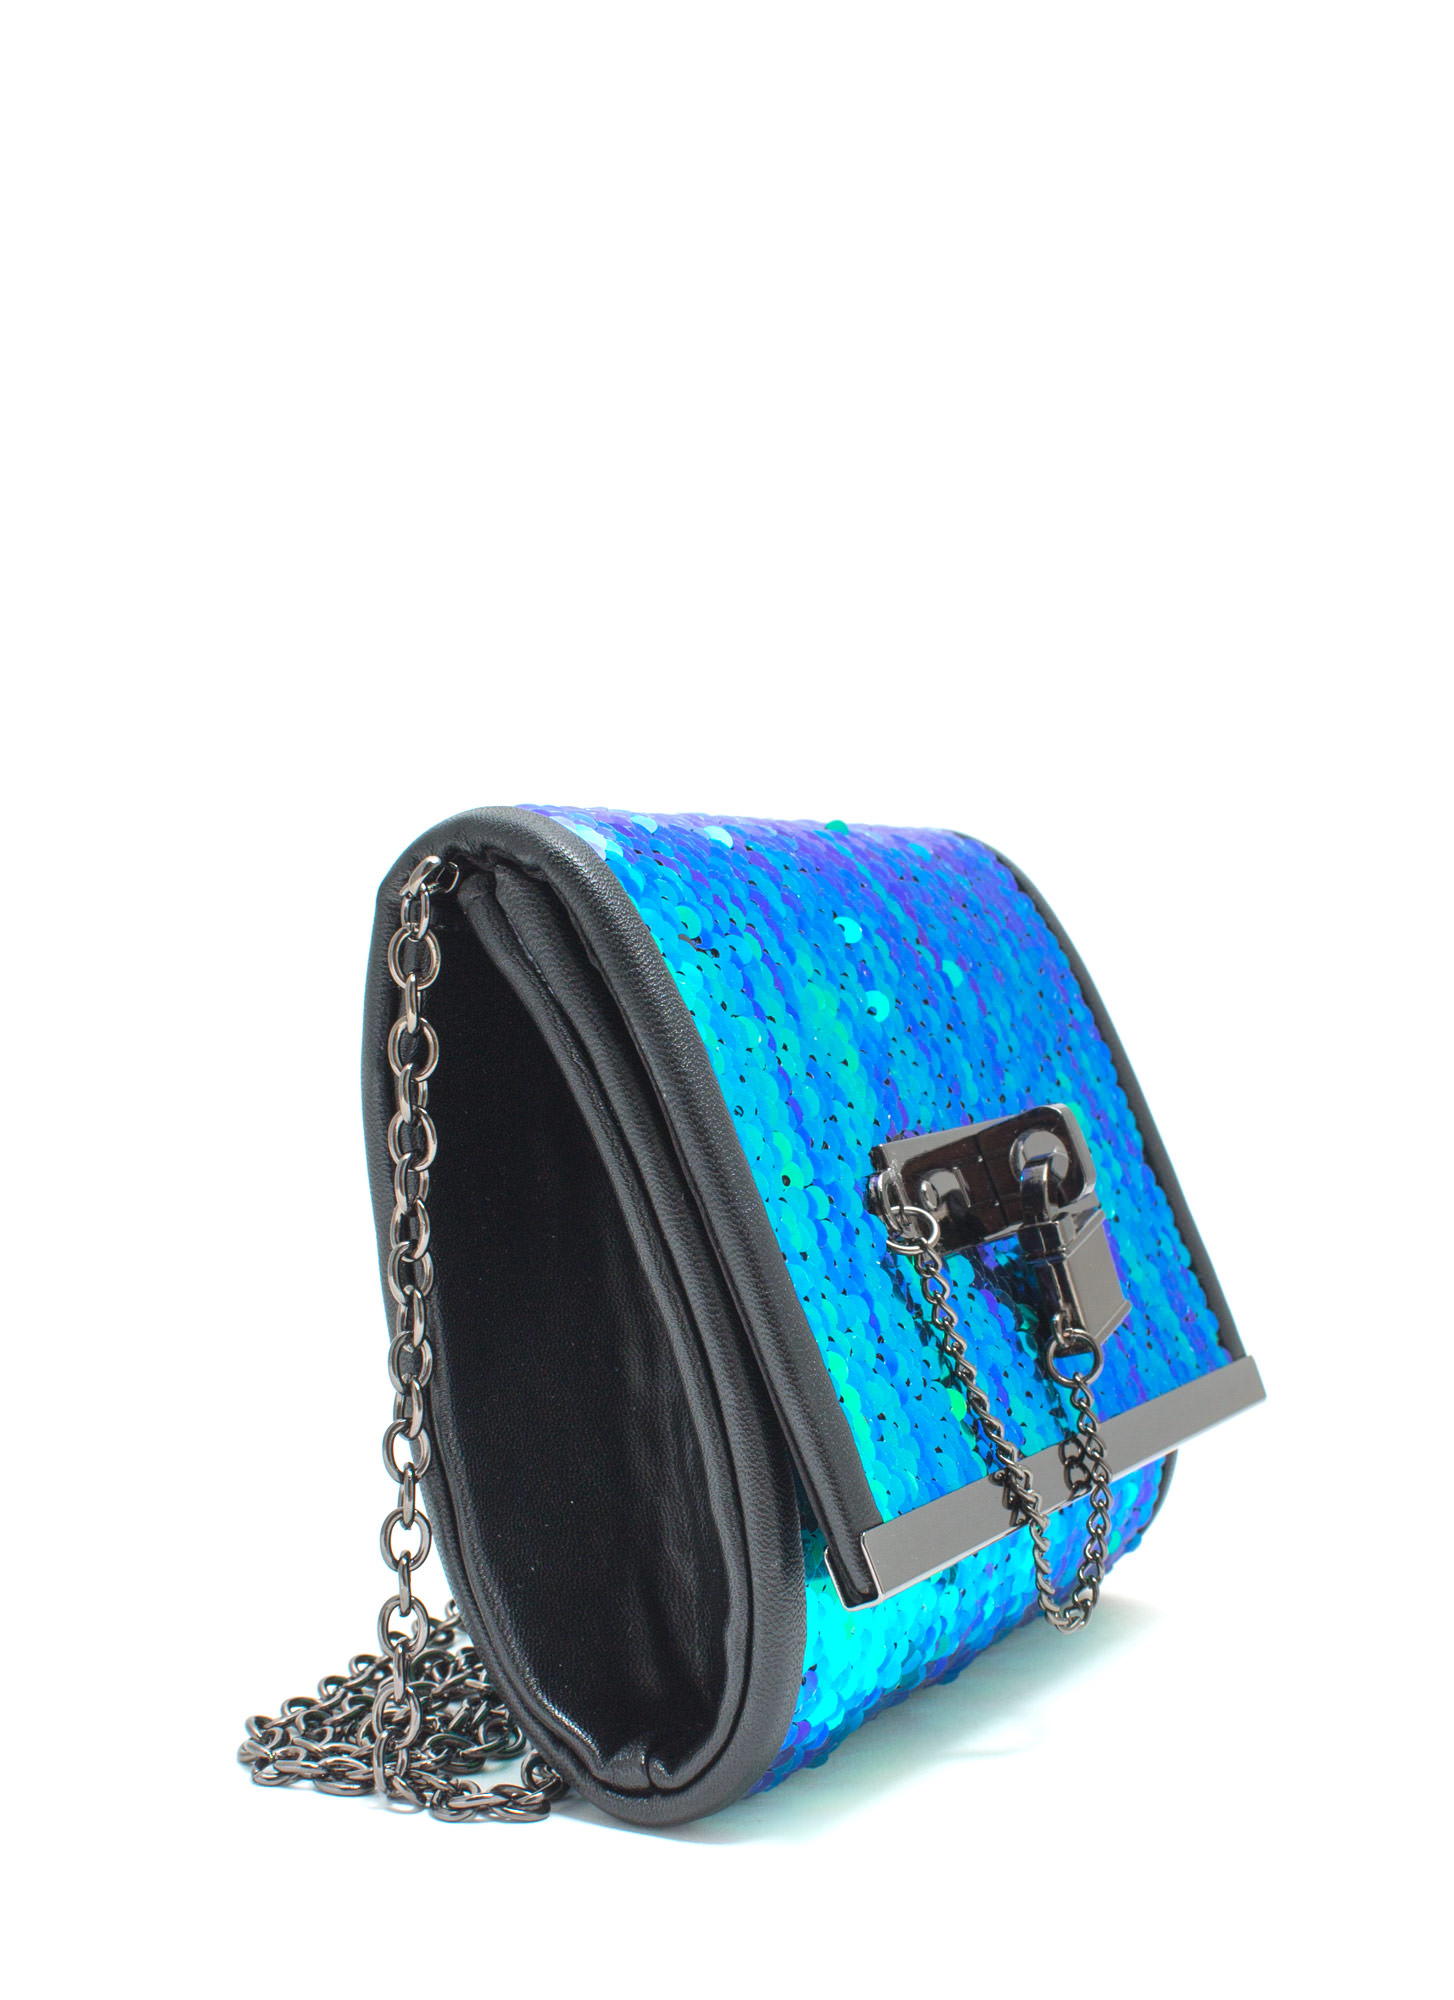 Just Wanna Dance Faux Leather Sequin Clutch BLUEGRN